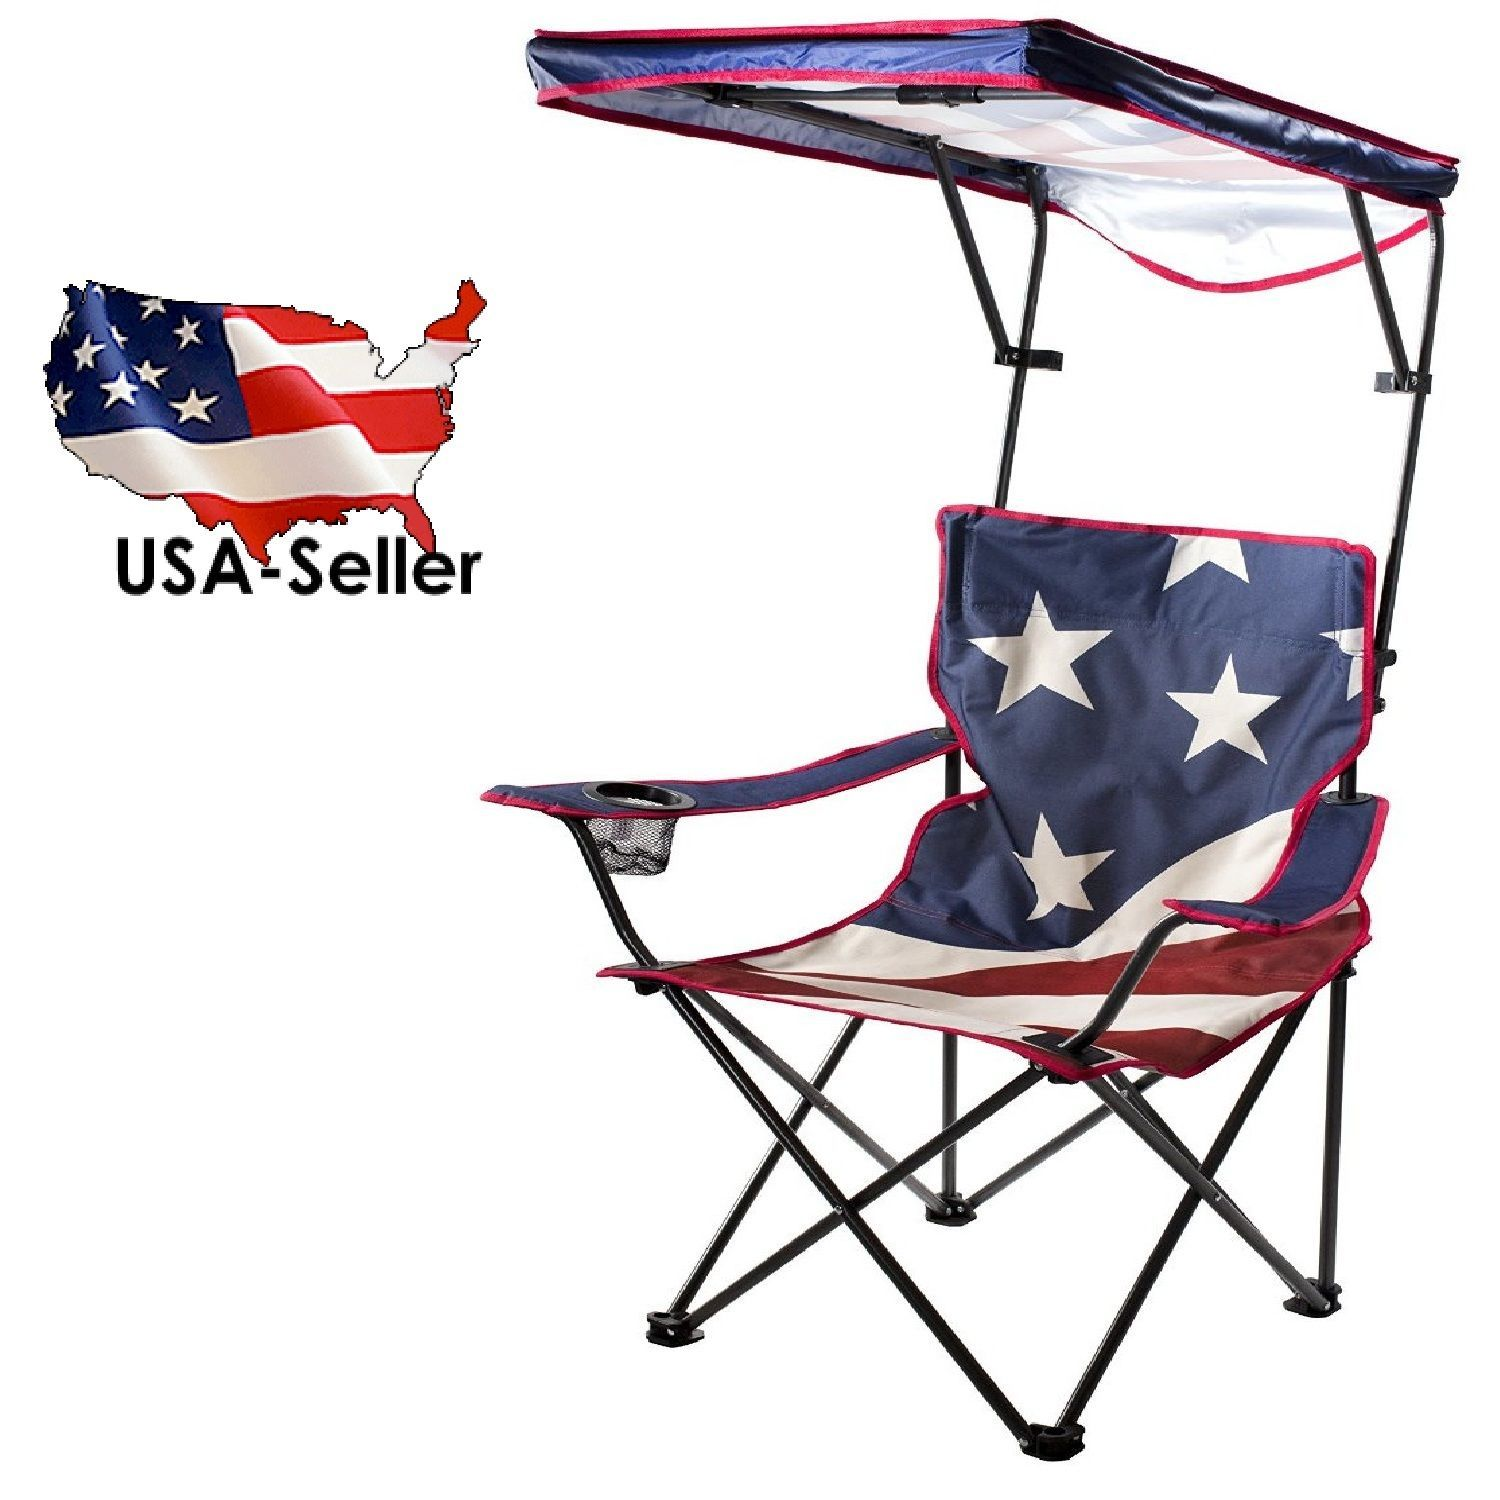 Chairs and Seats Folding Camping Chair Fishing Seat